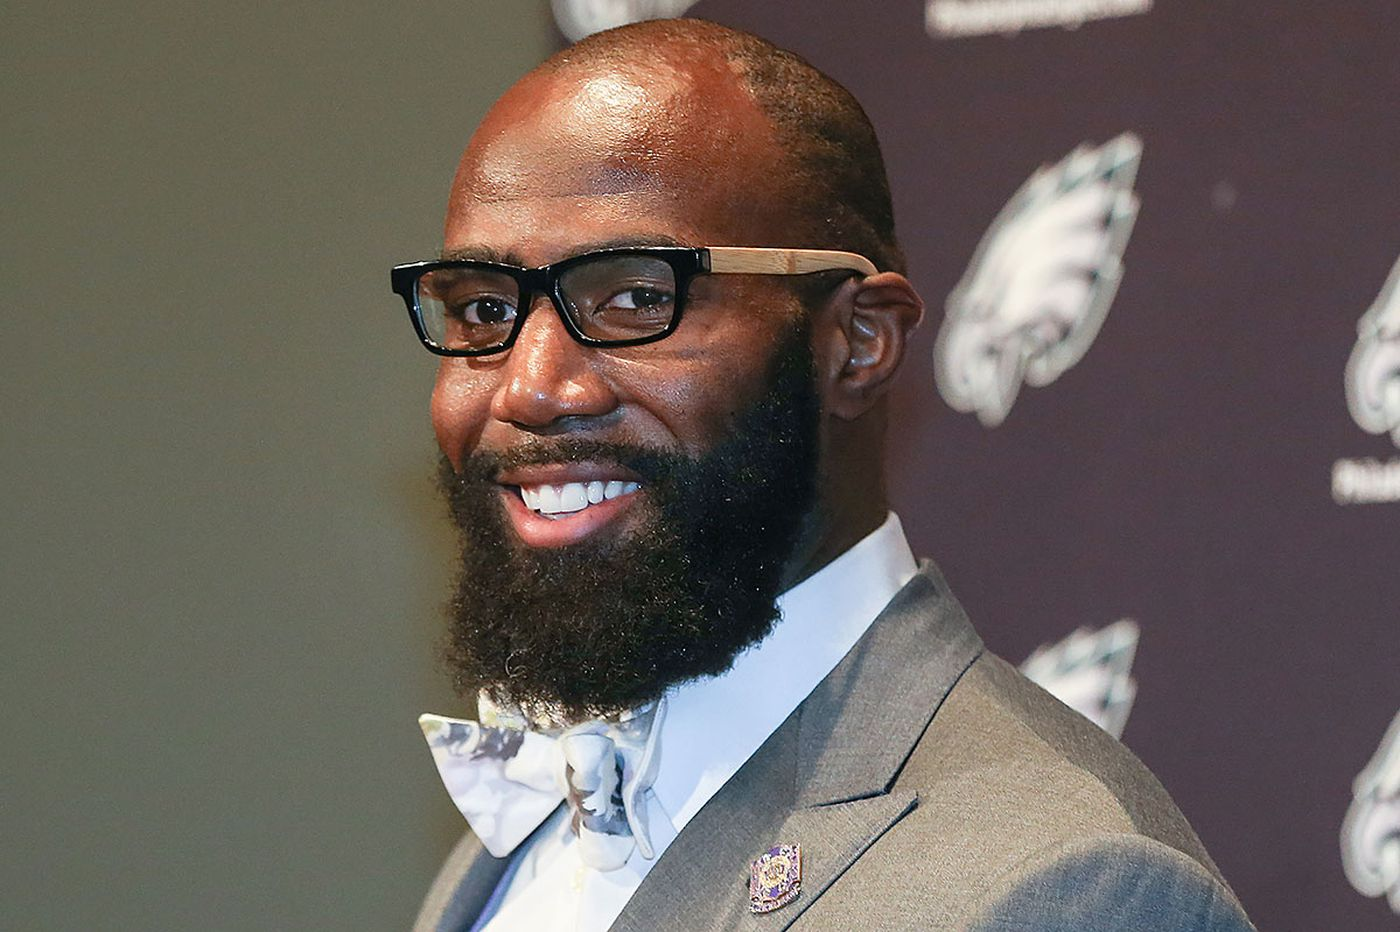 Eagles were smart to extend Malcolm Jenkins